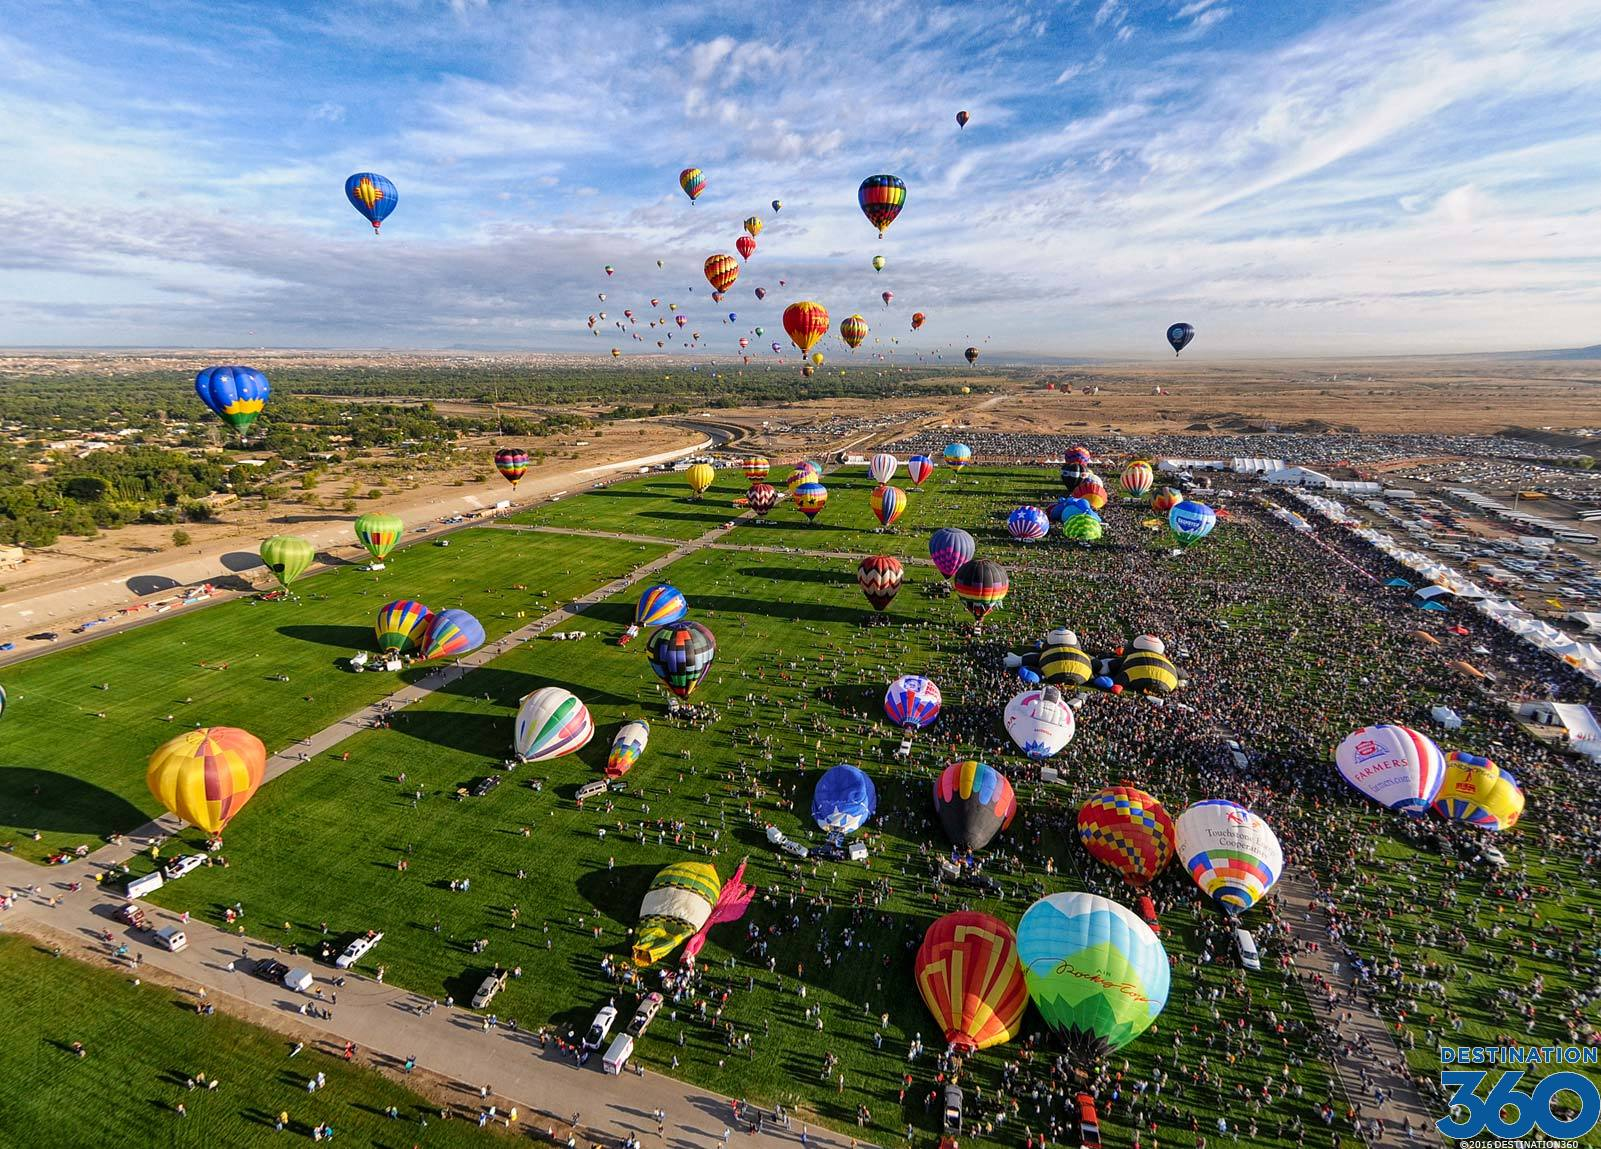 Albuquerque Balloon Festival Virtual Tour